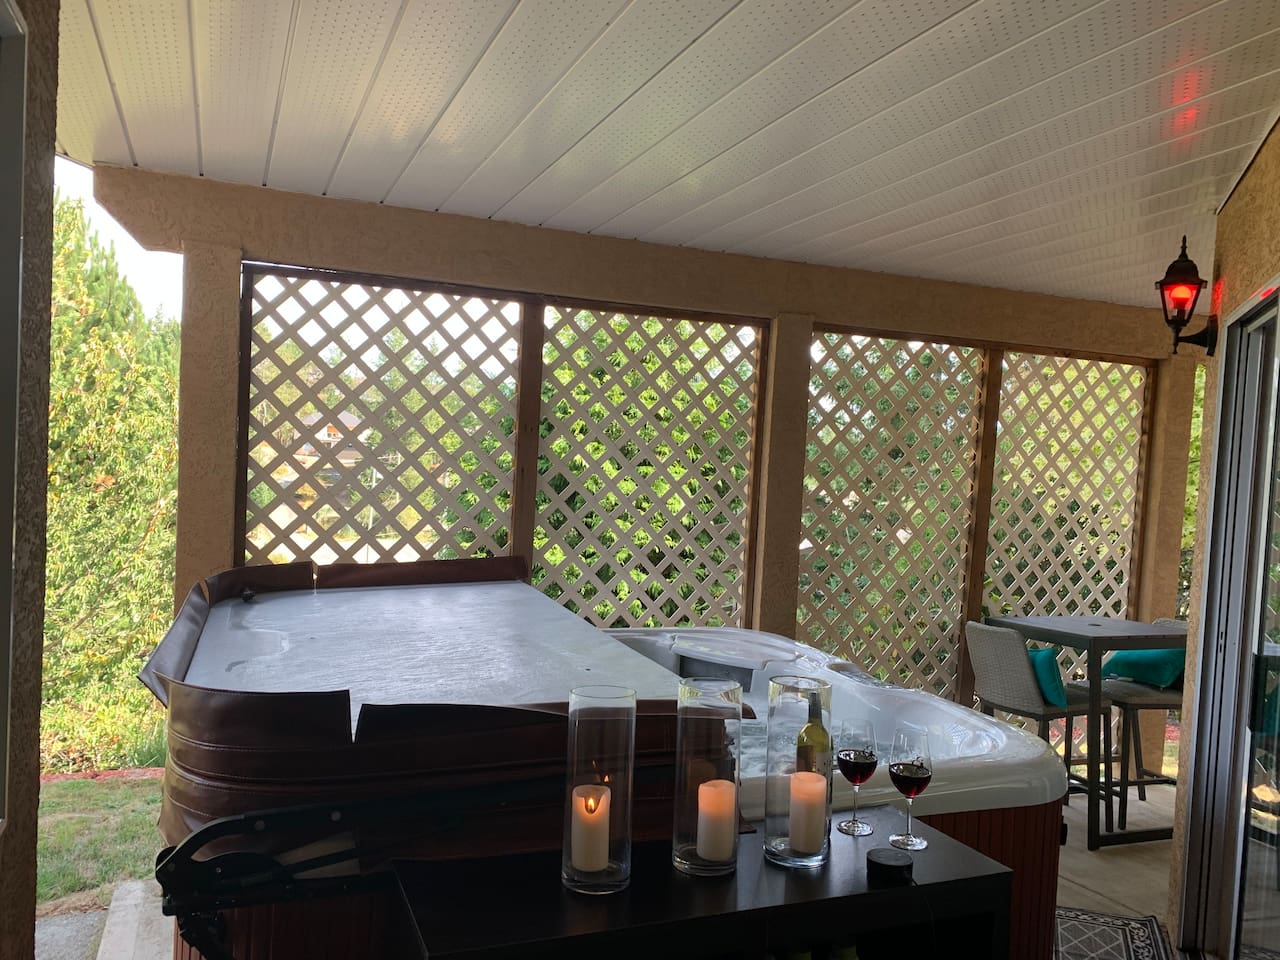 6 person hot tub with Amazon Alexa to keep you entertained while you relax. Bistro patio set to enjoy morning coffee or evening wine while looking out over the view.